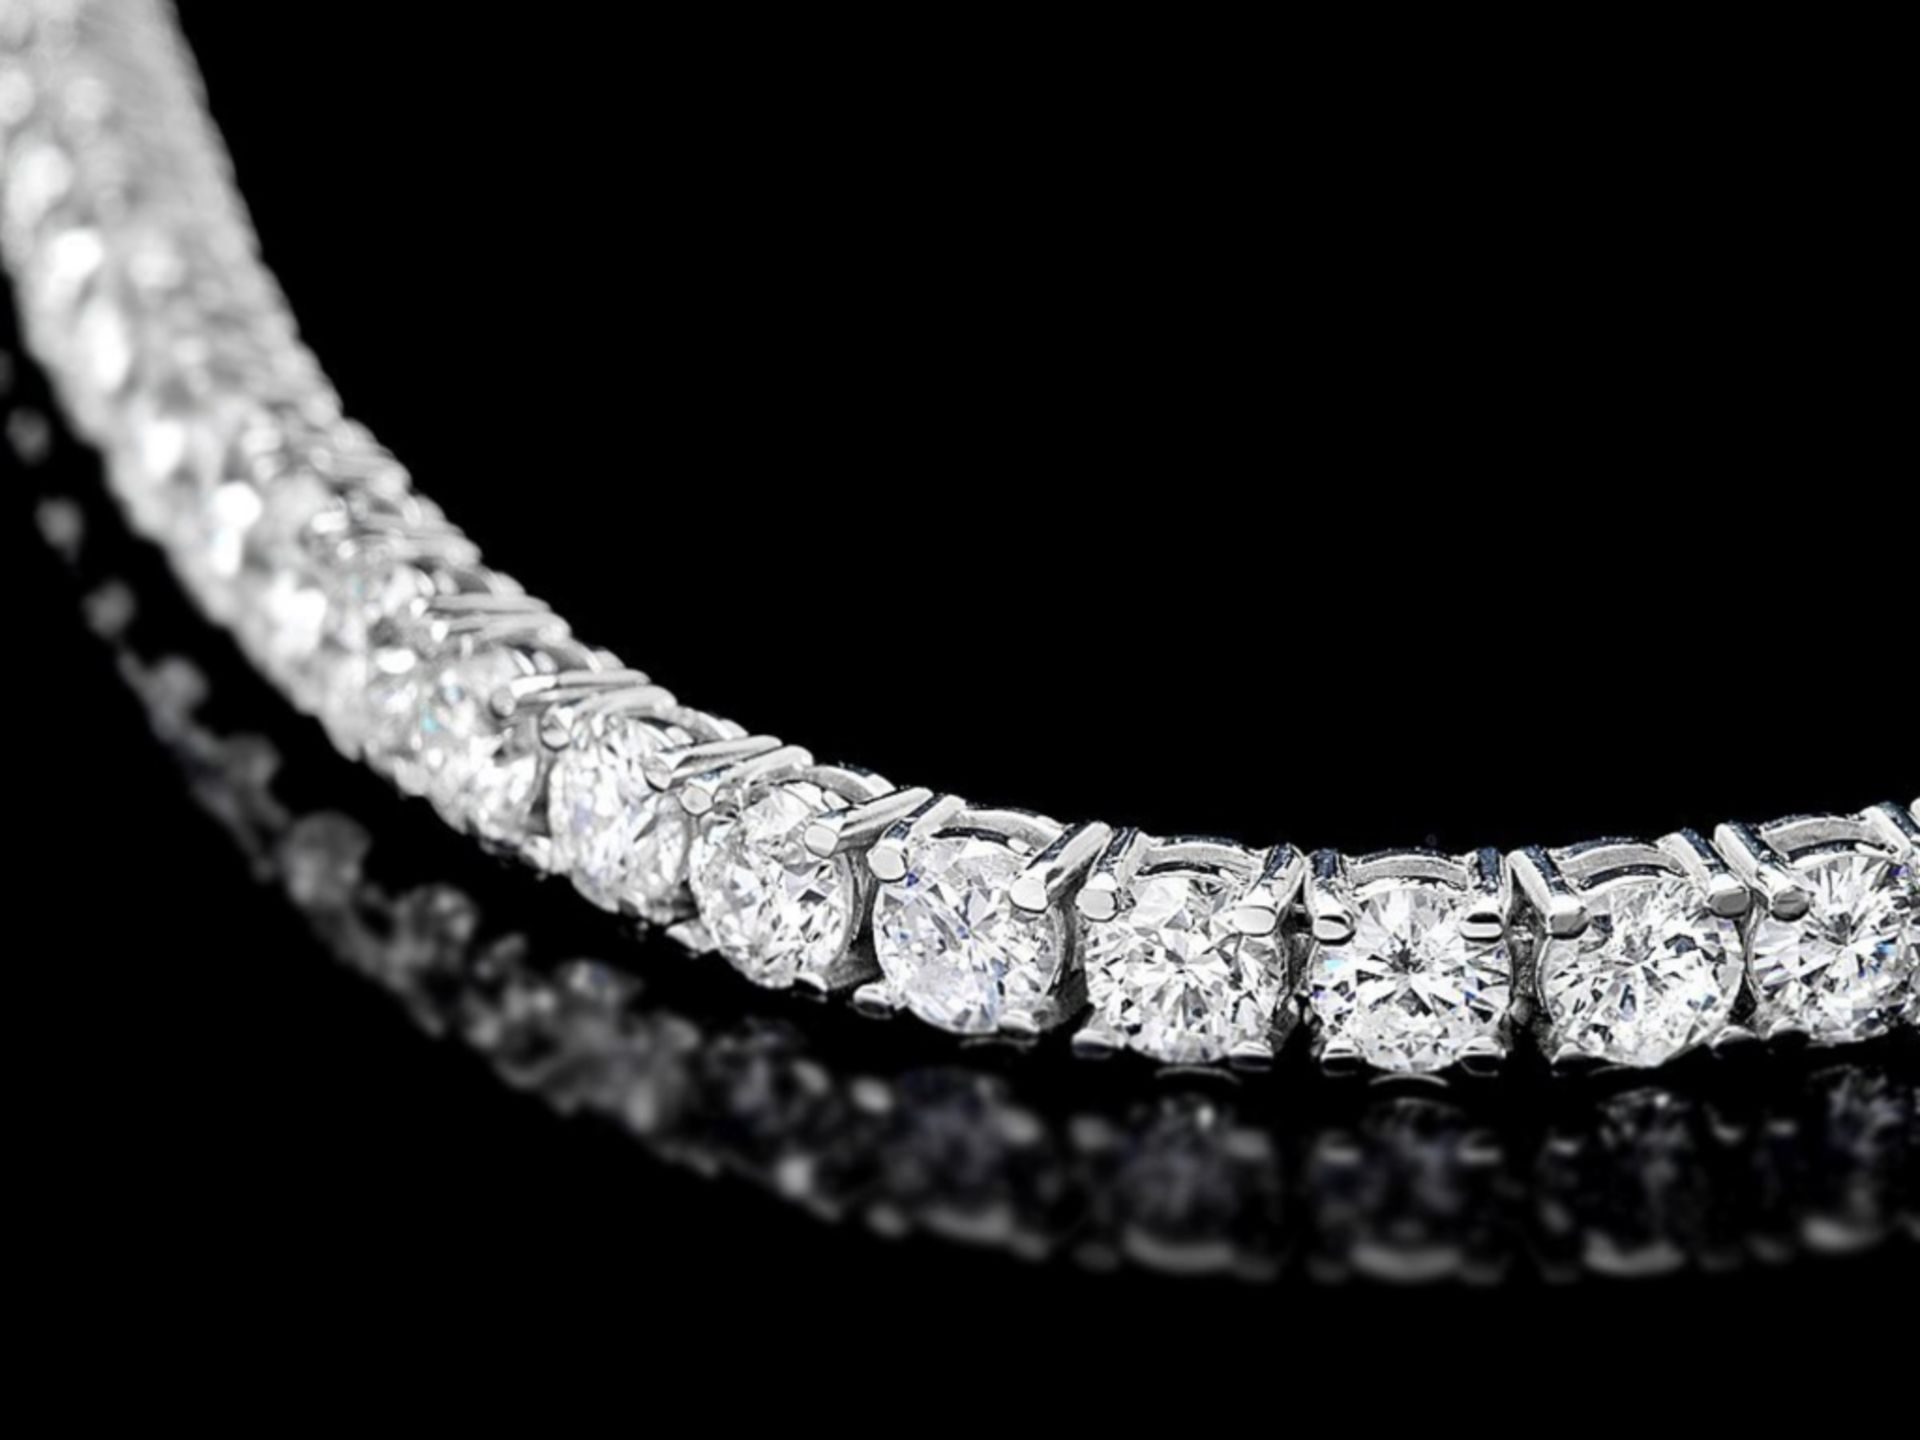 ^18k White Gold 7.45ct Diamond Bracelet - Image 2 of 3